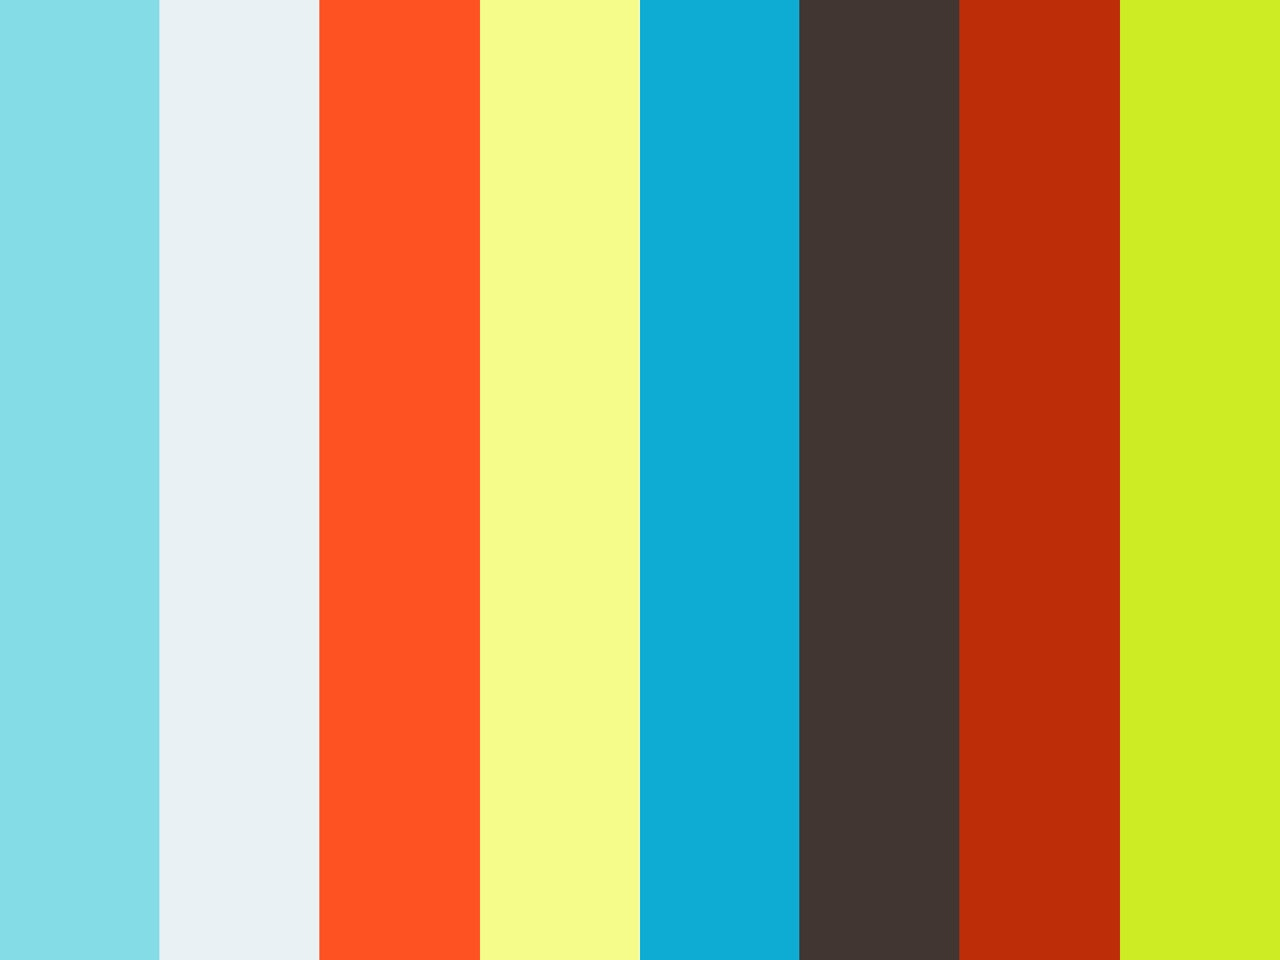 Upper Merion Board of Supervisors Meeting April 20, 2017